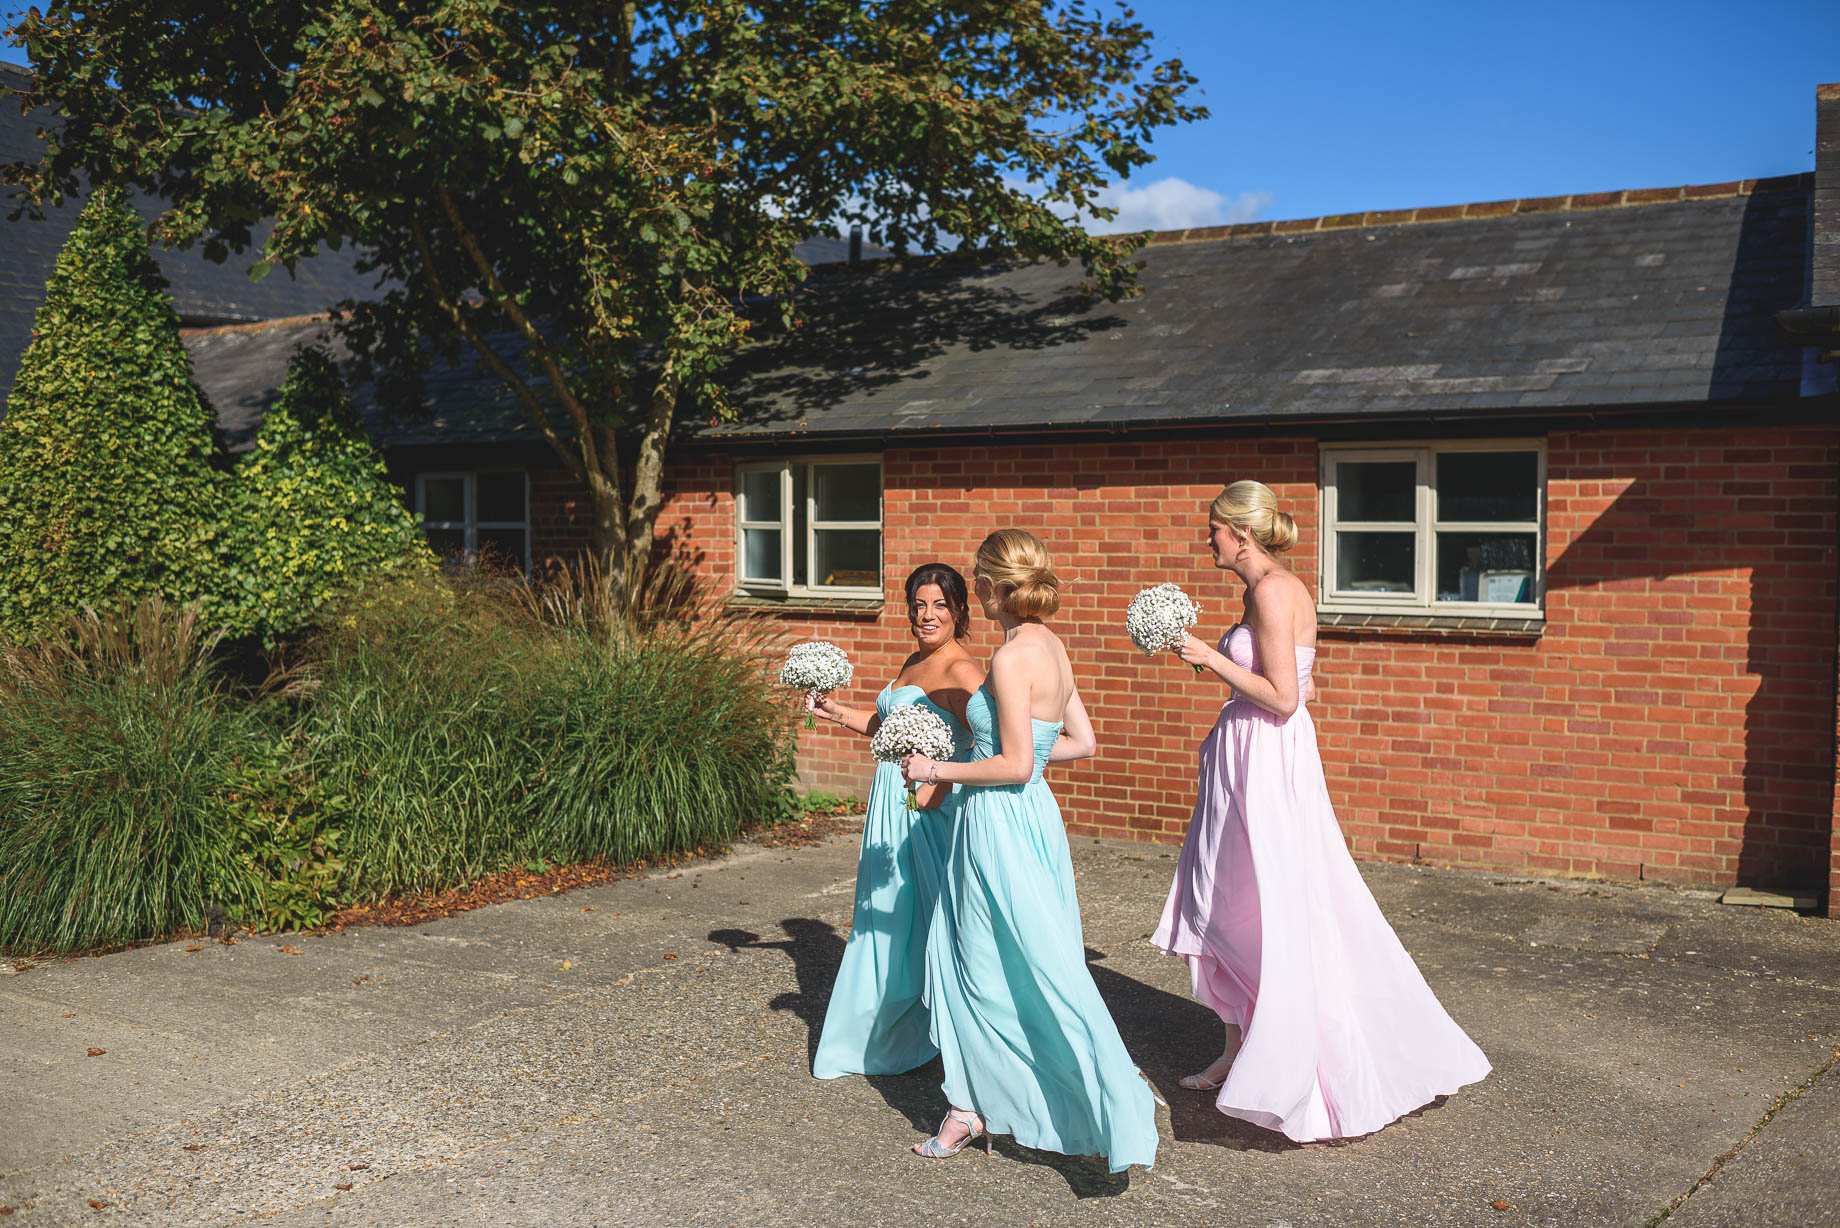 Bury Court Barn wedding photography - Guy Collier - Kate and Russ (58 of 187)